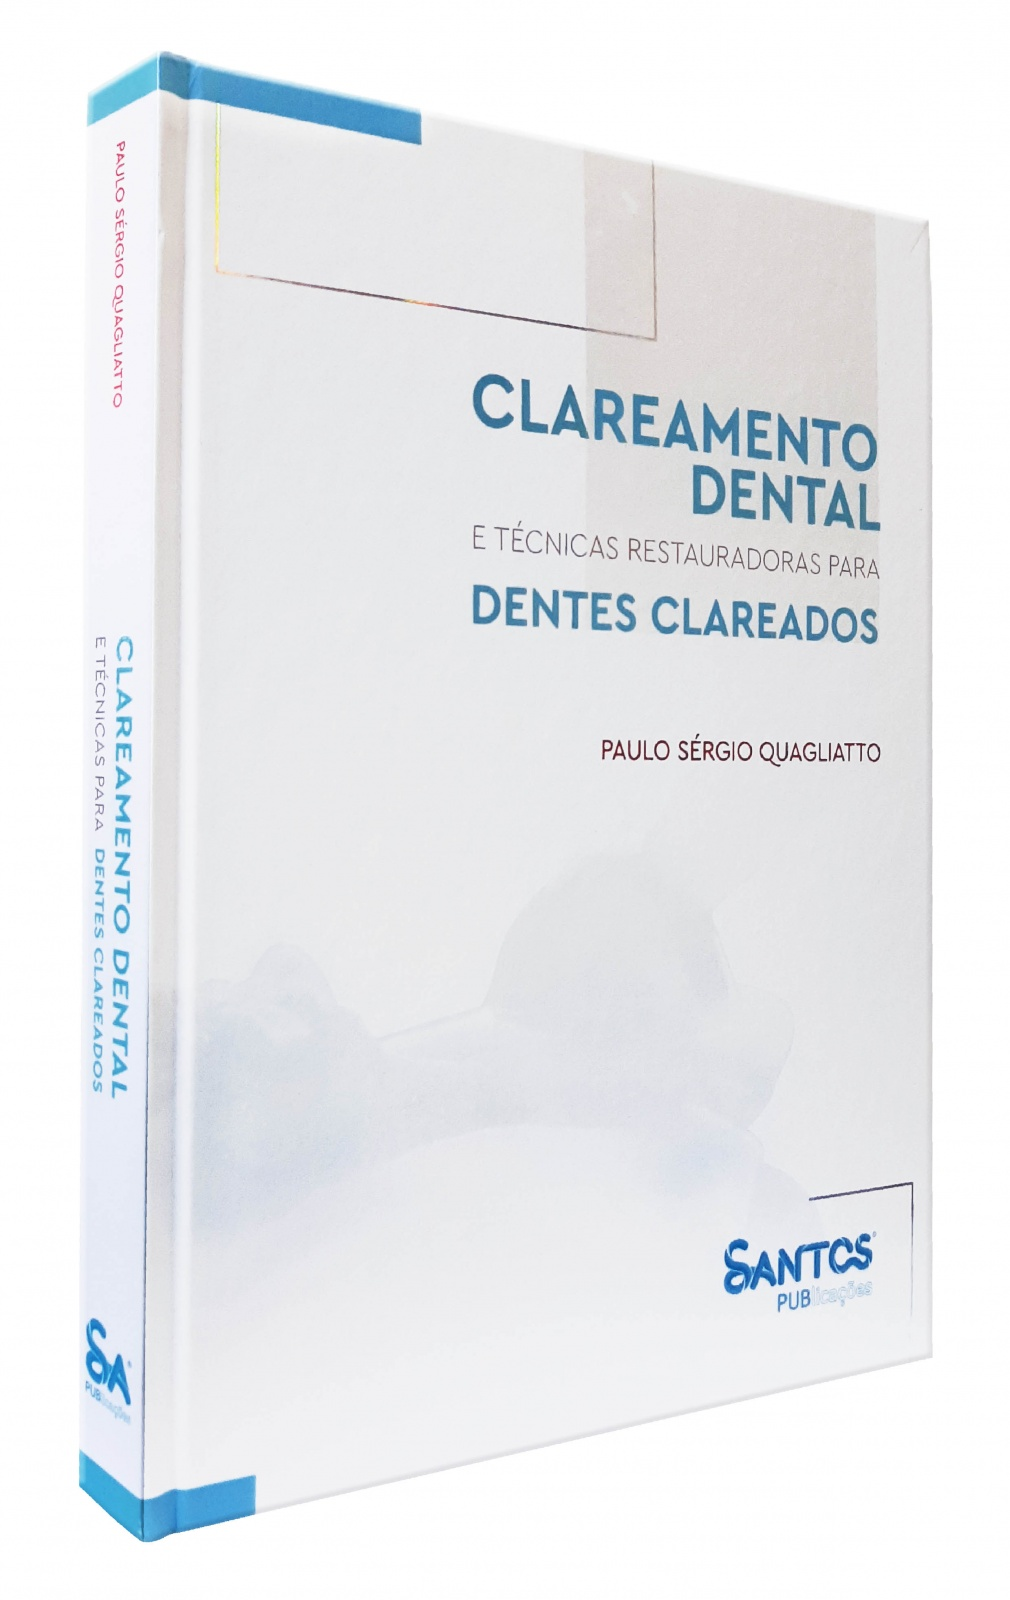 Clareamento Dental E Técnicas Restauradoras Para Dentes Clareados